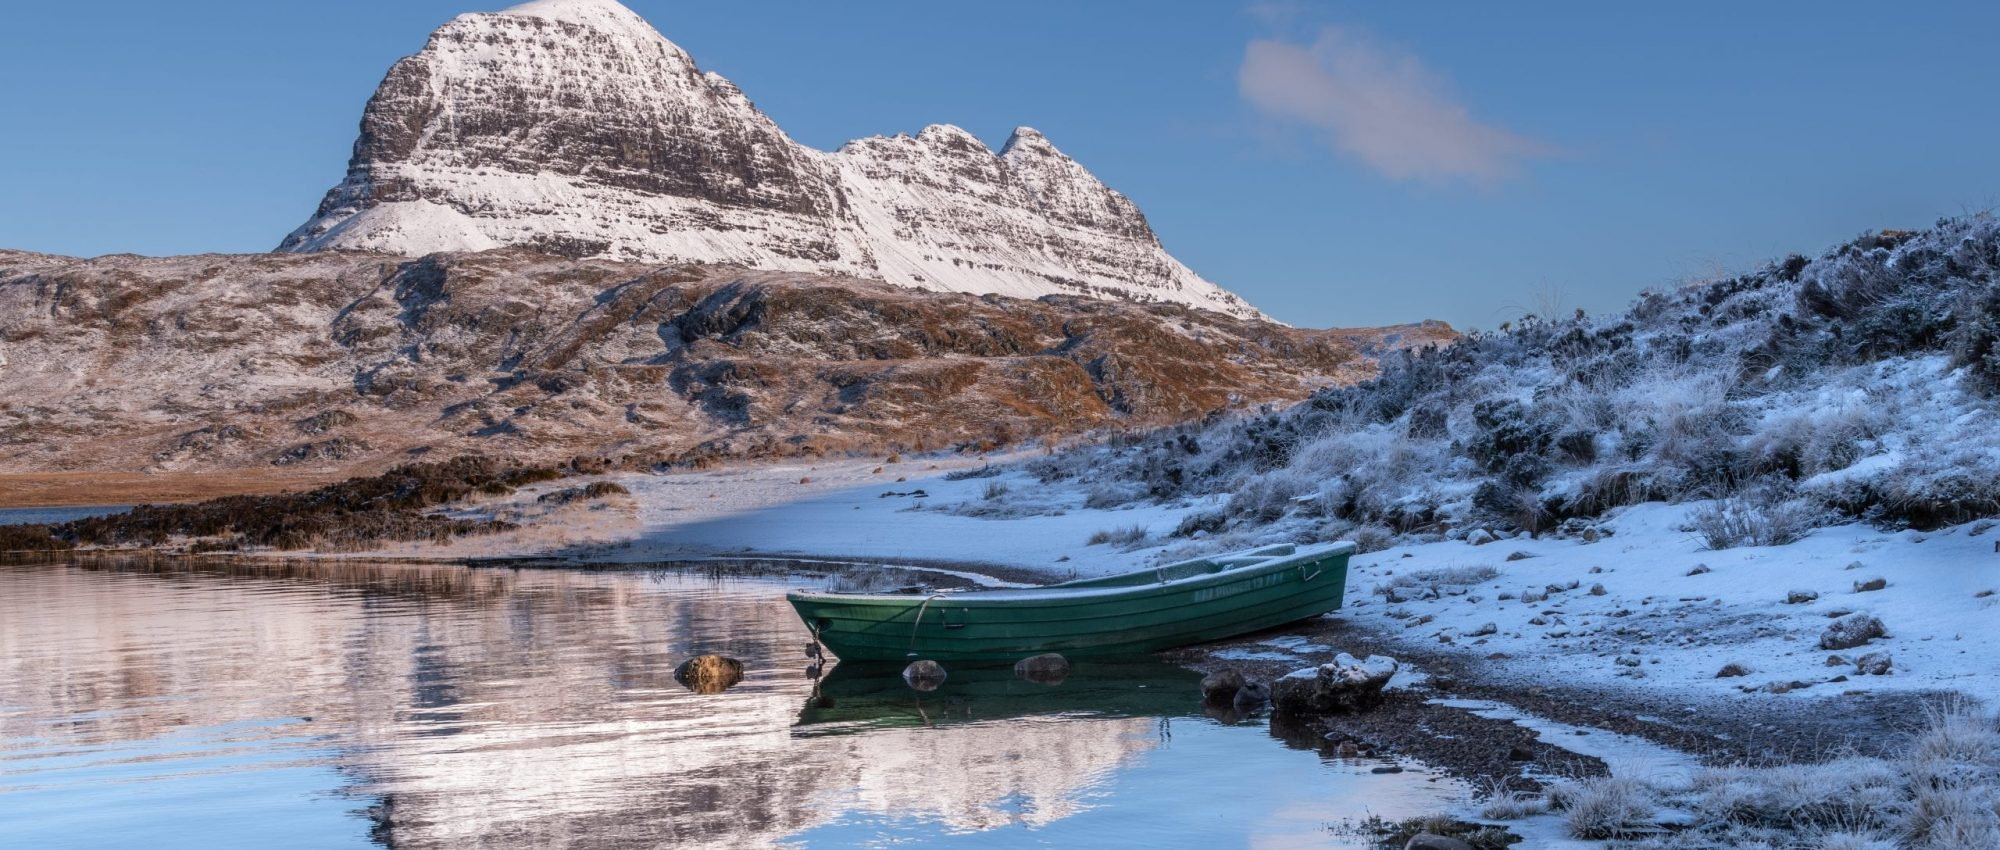 small green boat on snowy day with Suilven hill in background